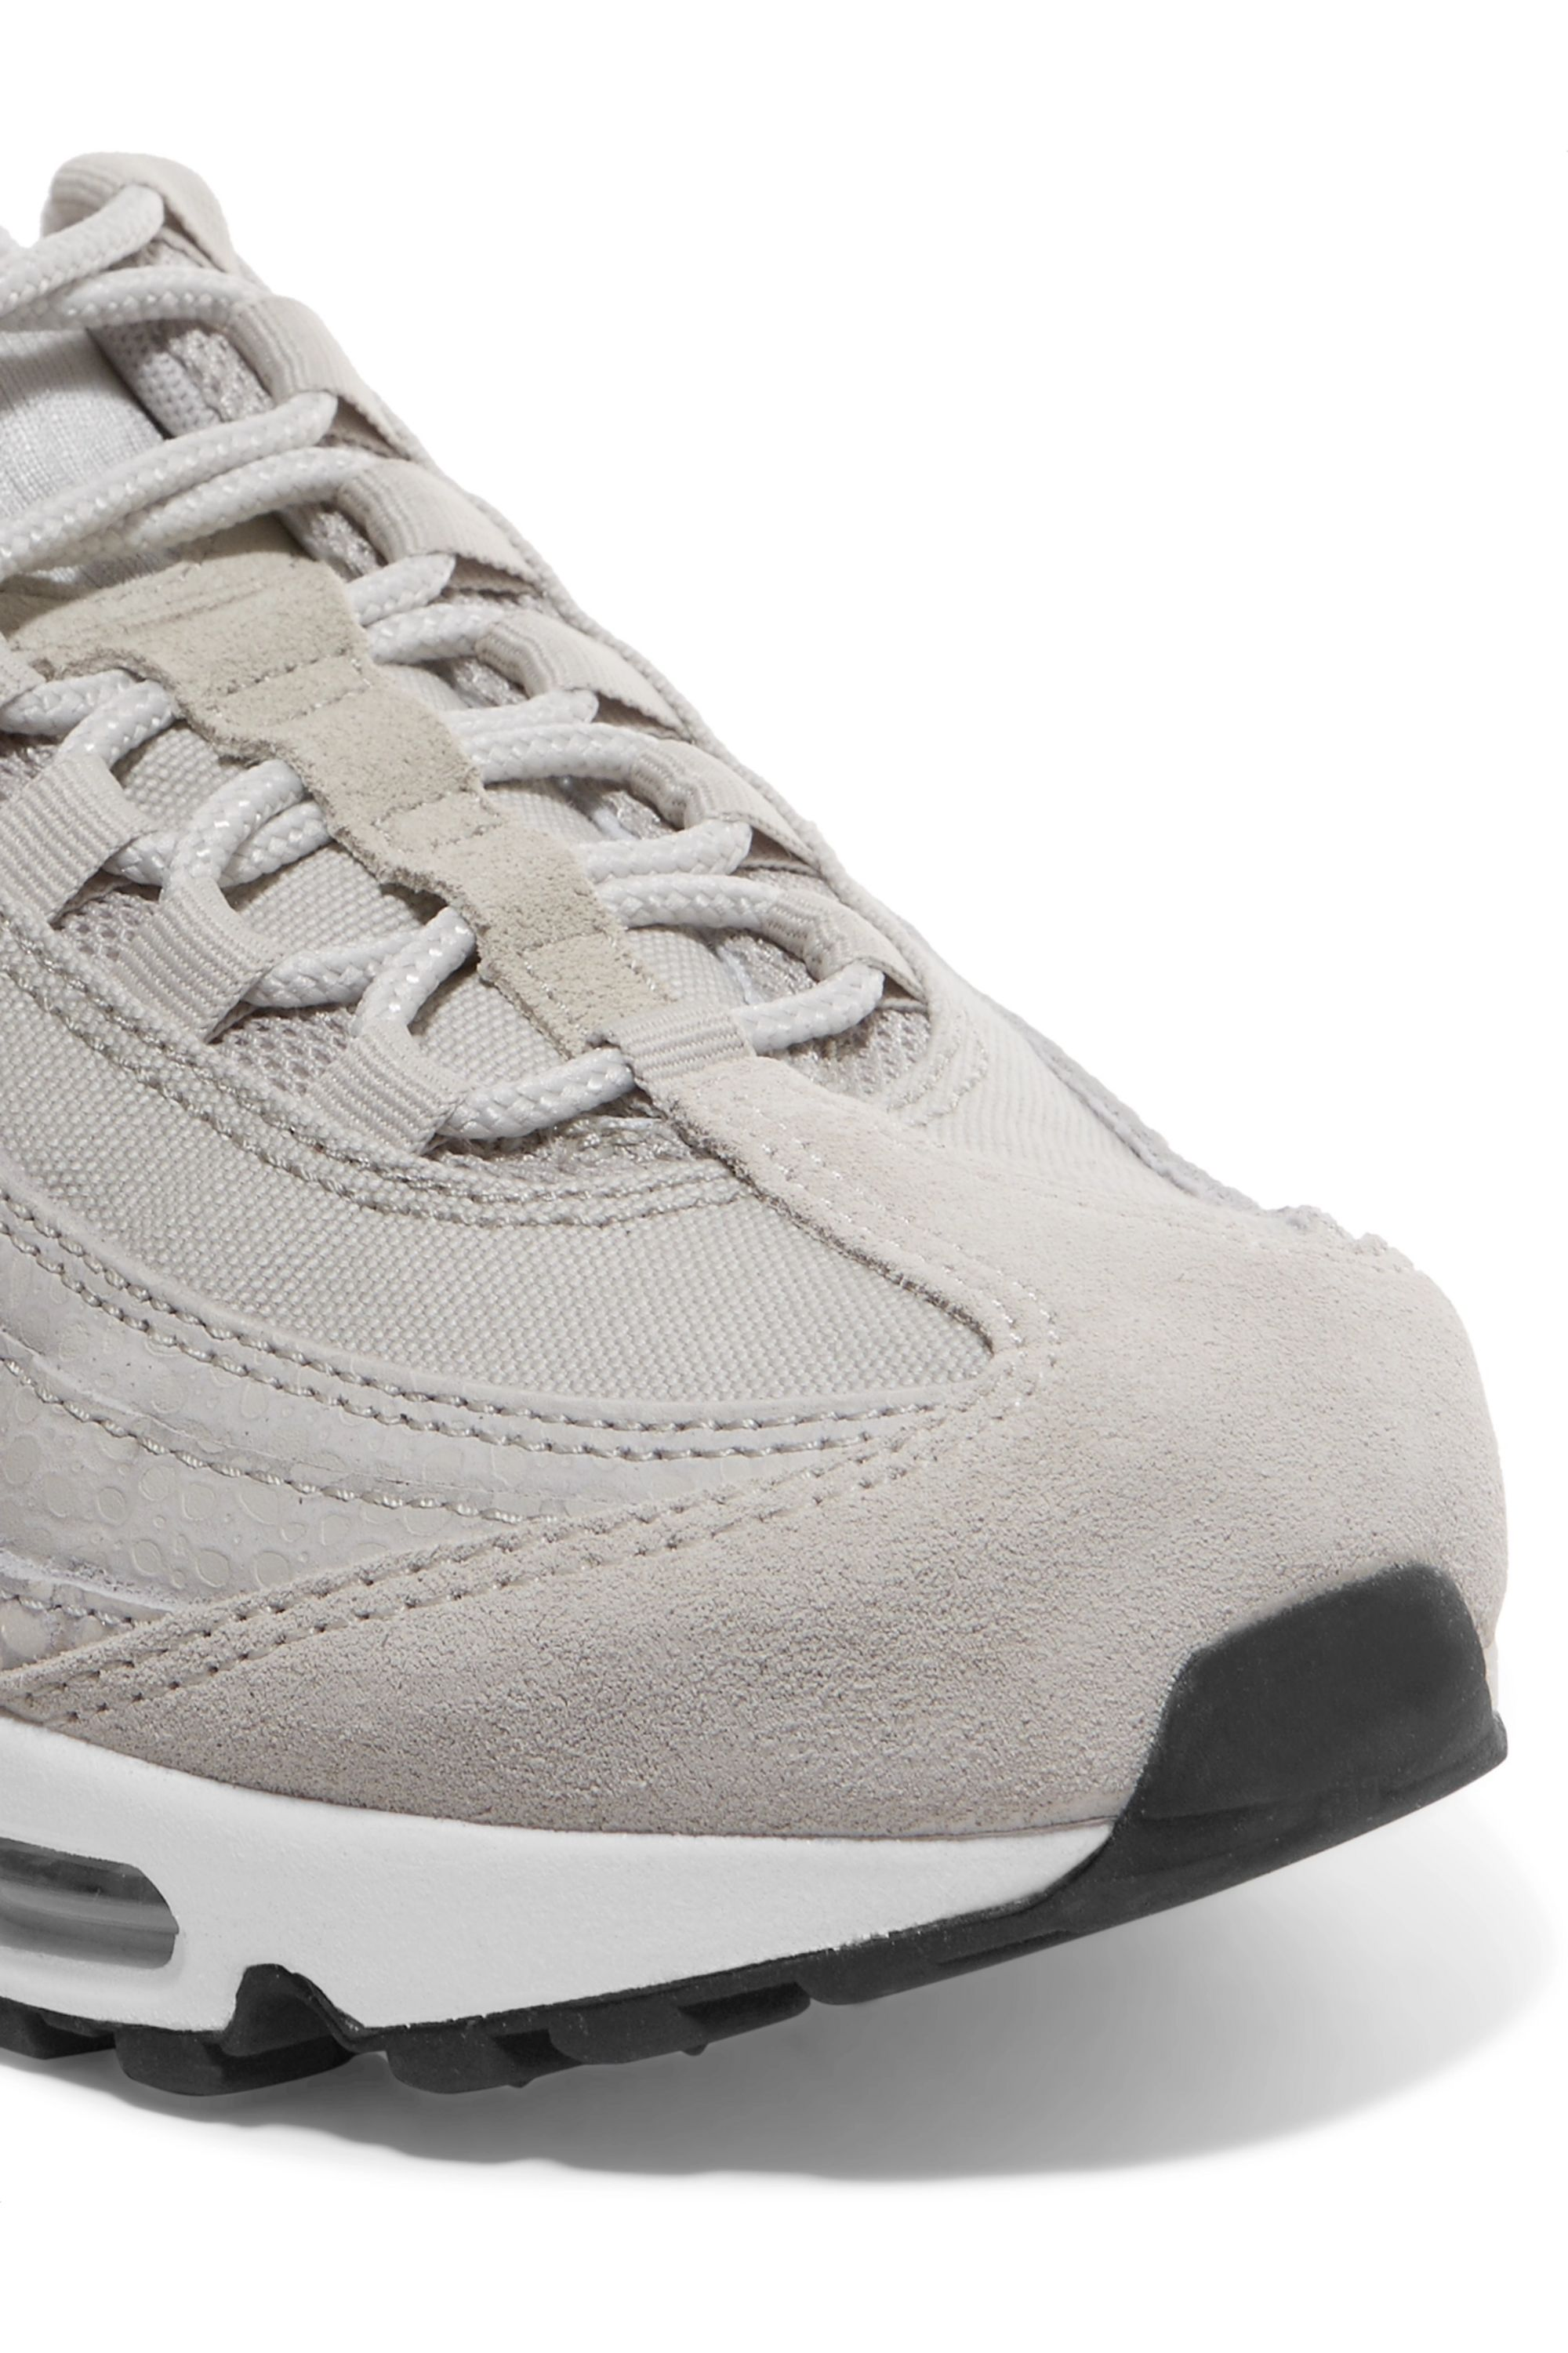 Baskets en daim gaufré et en toile Air Max 95